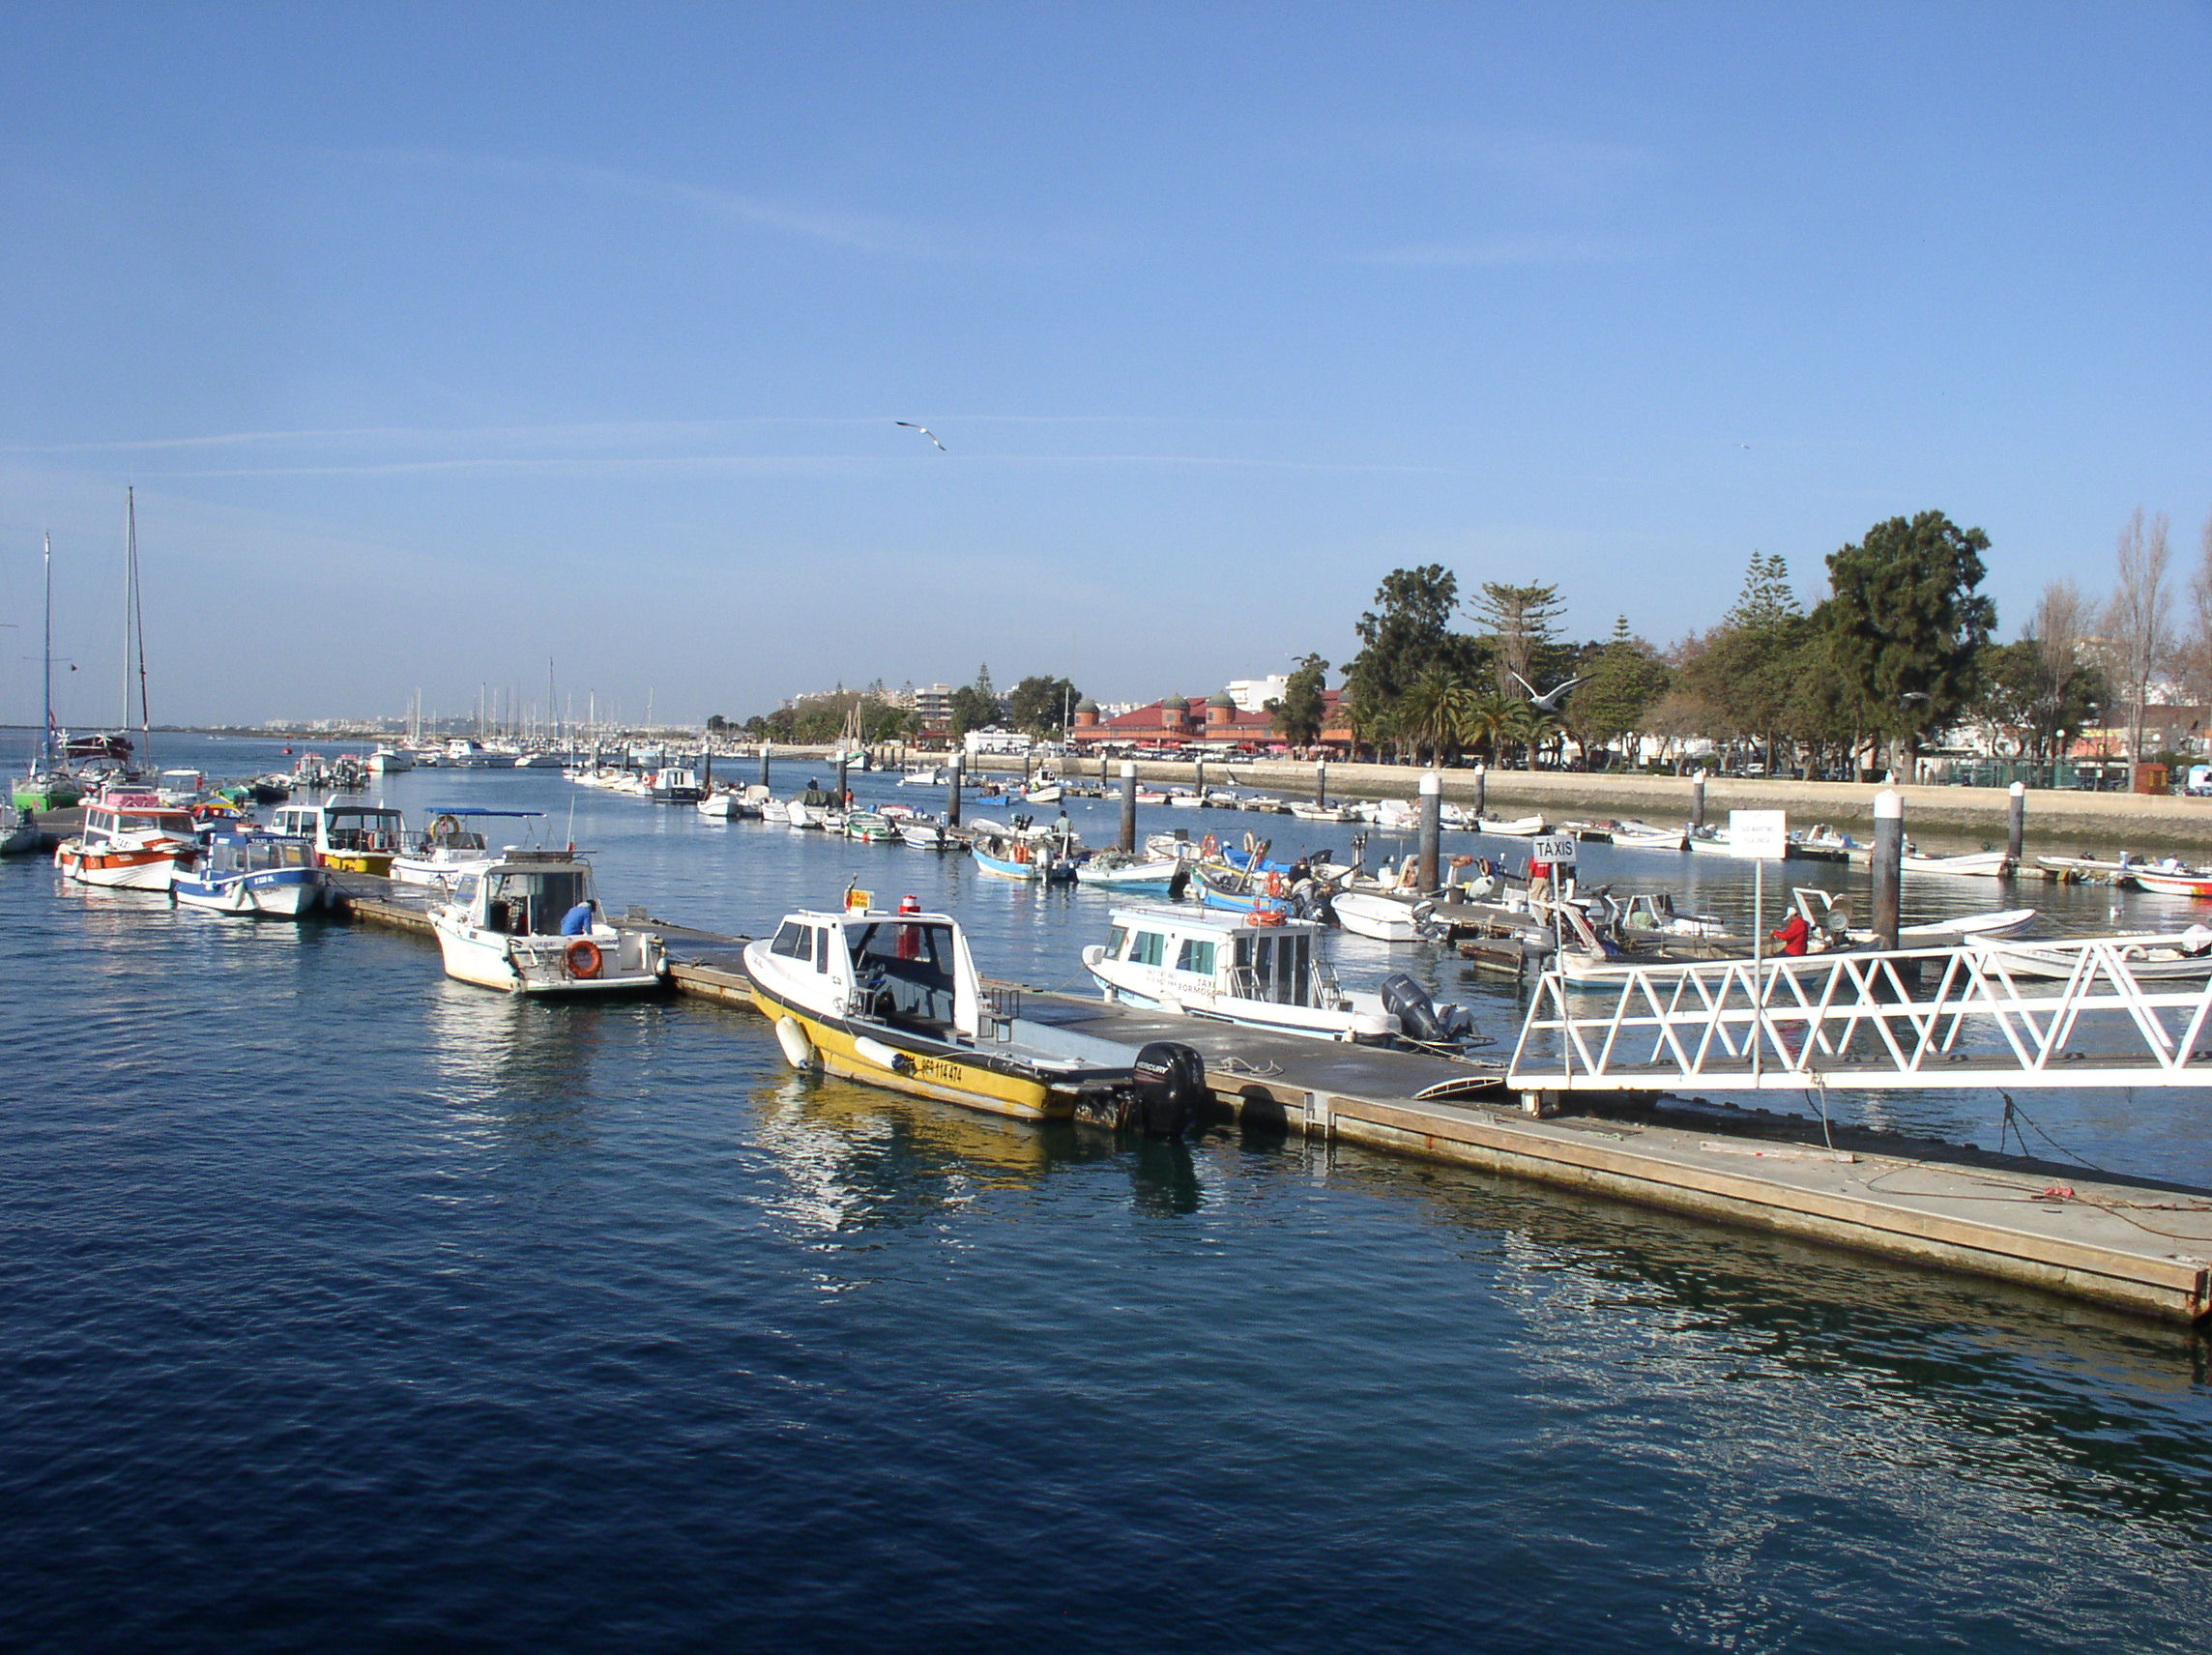 08-olhao-01-p1040581